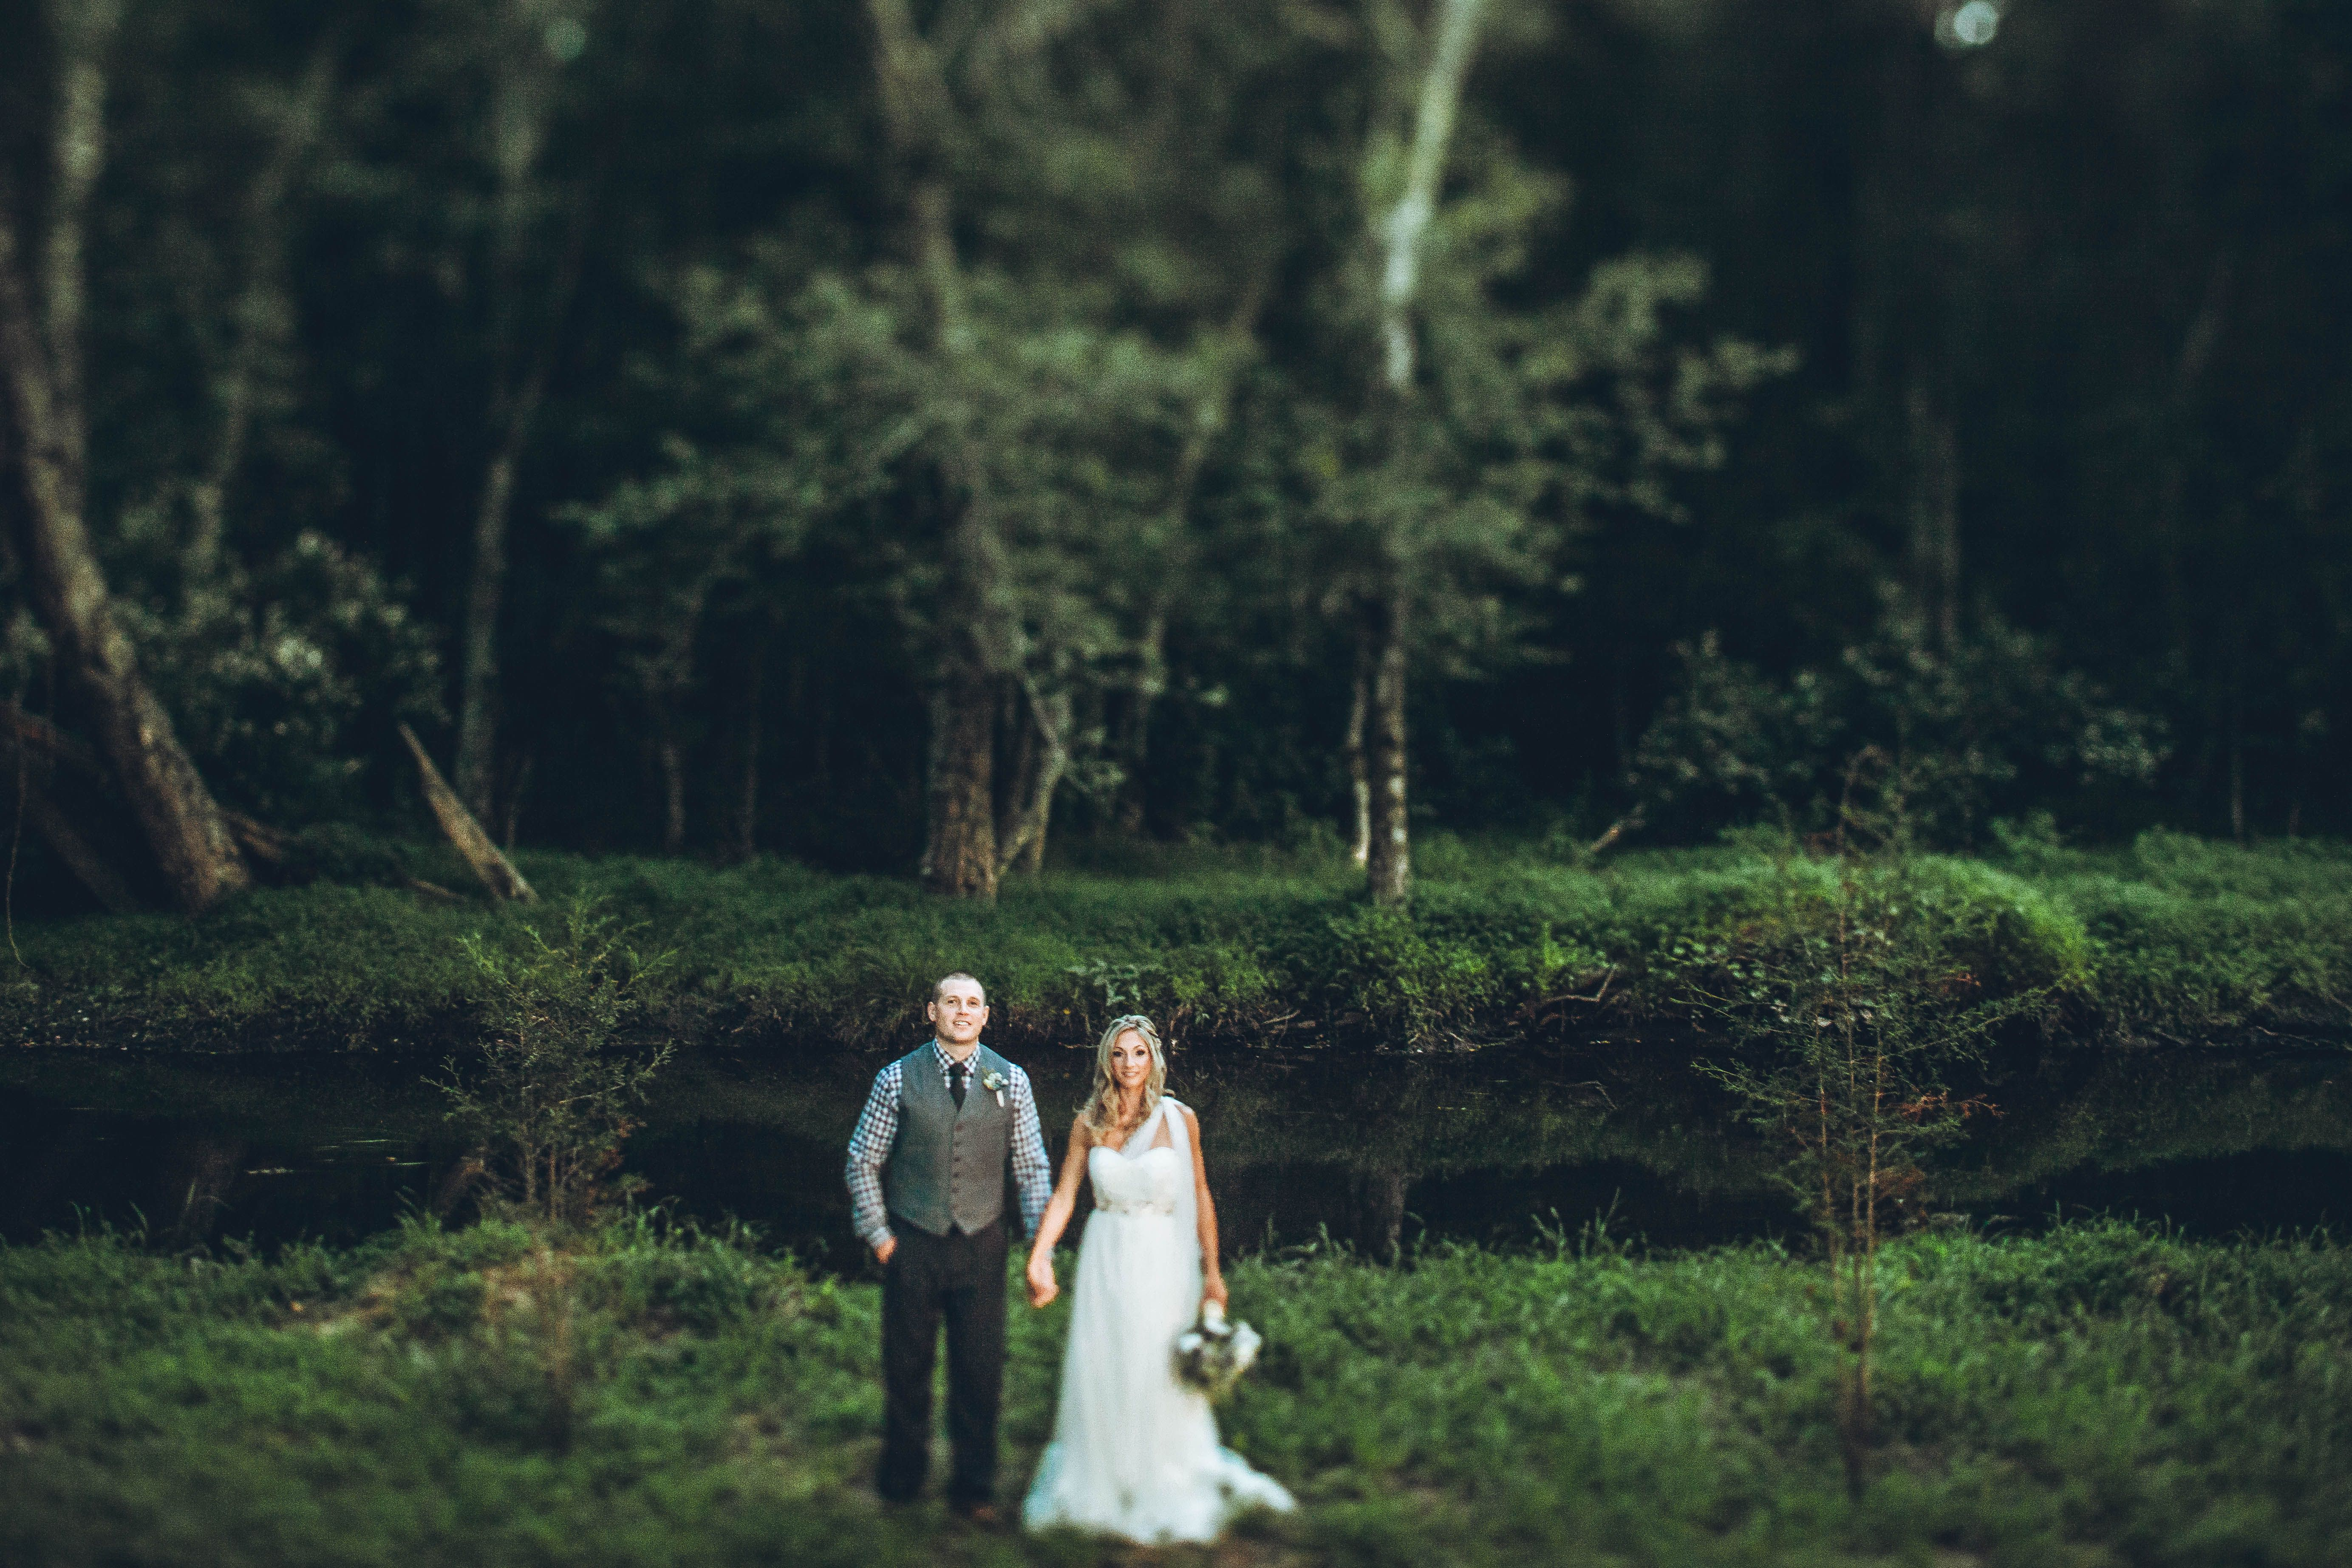 Choose Our Rustic Farm Wedding Venue In New Jersey Surrounded By Blueberry Fields And The Pinelands